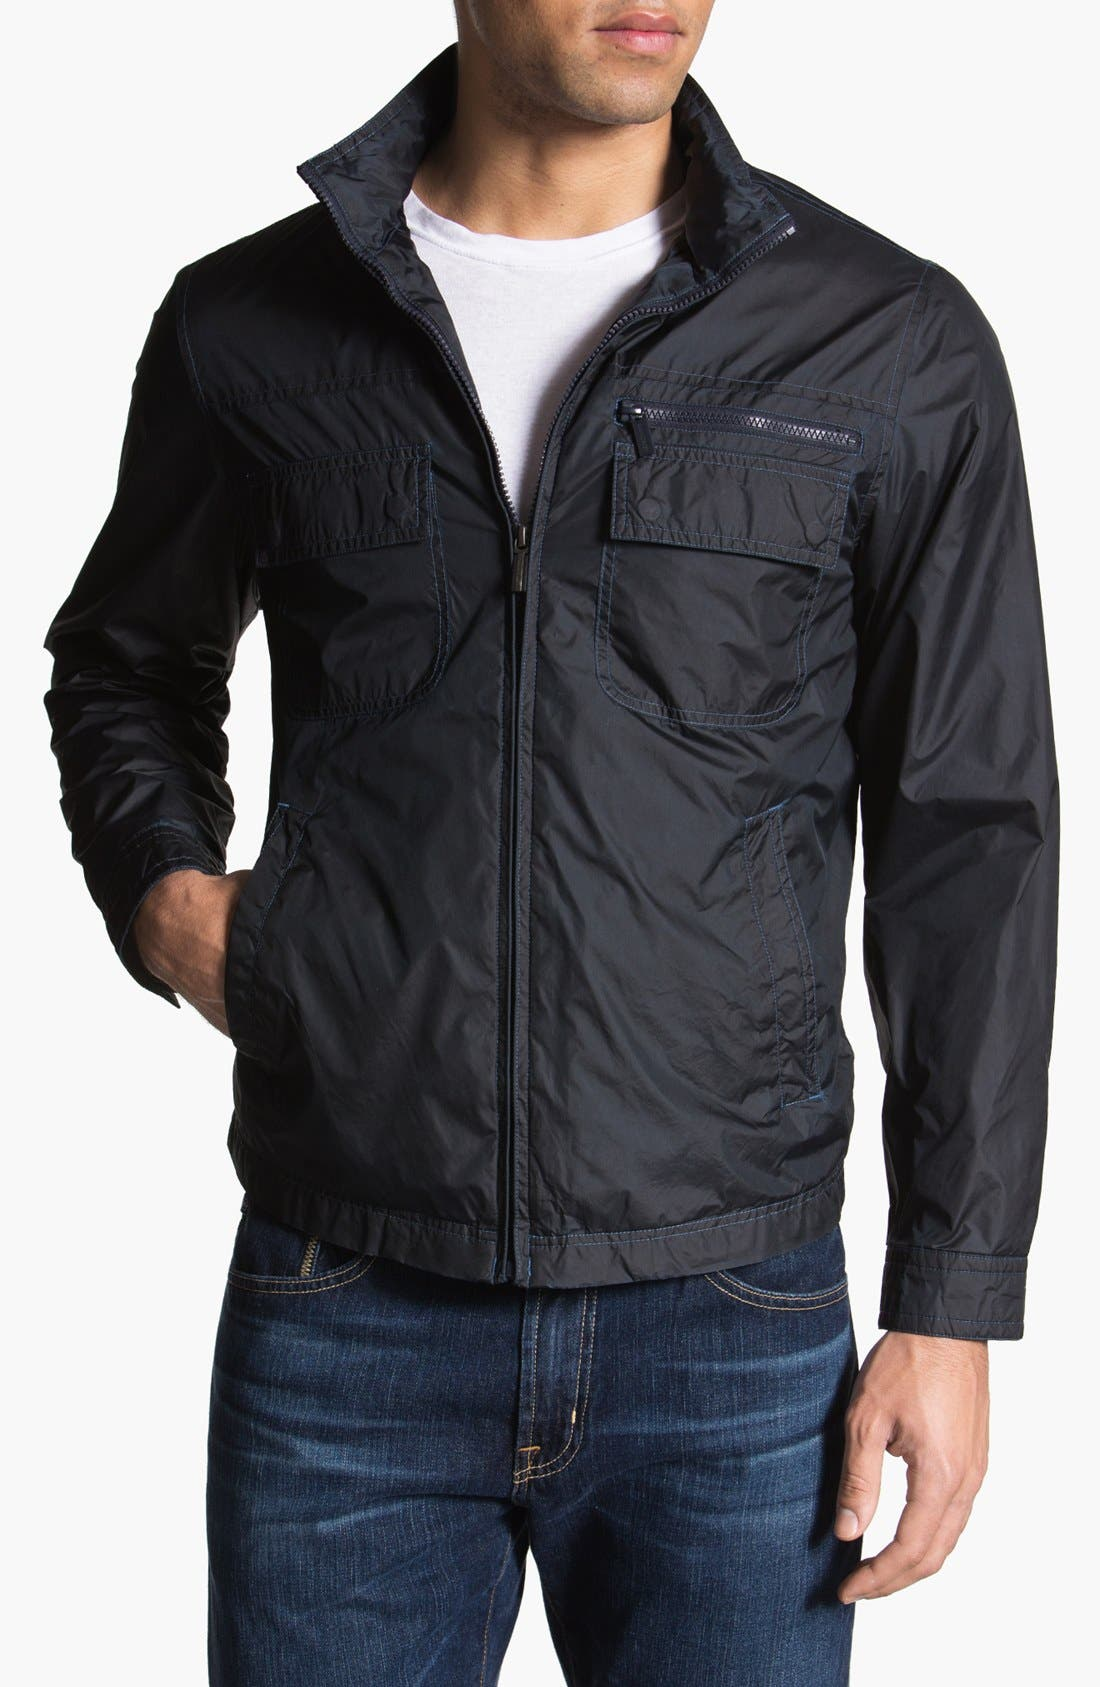 Alternate Image 1 Selected - RAINFOREST Bomber Jacket